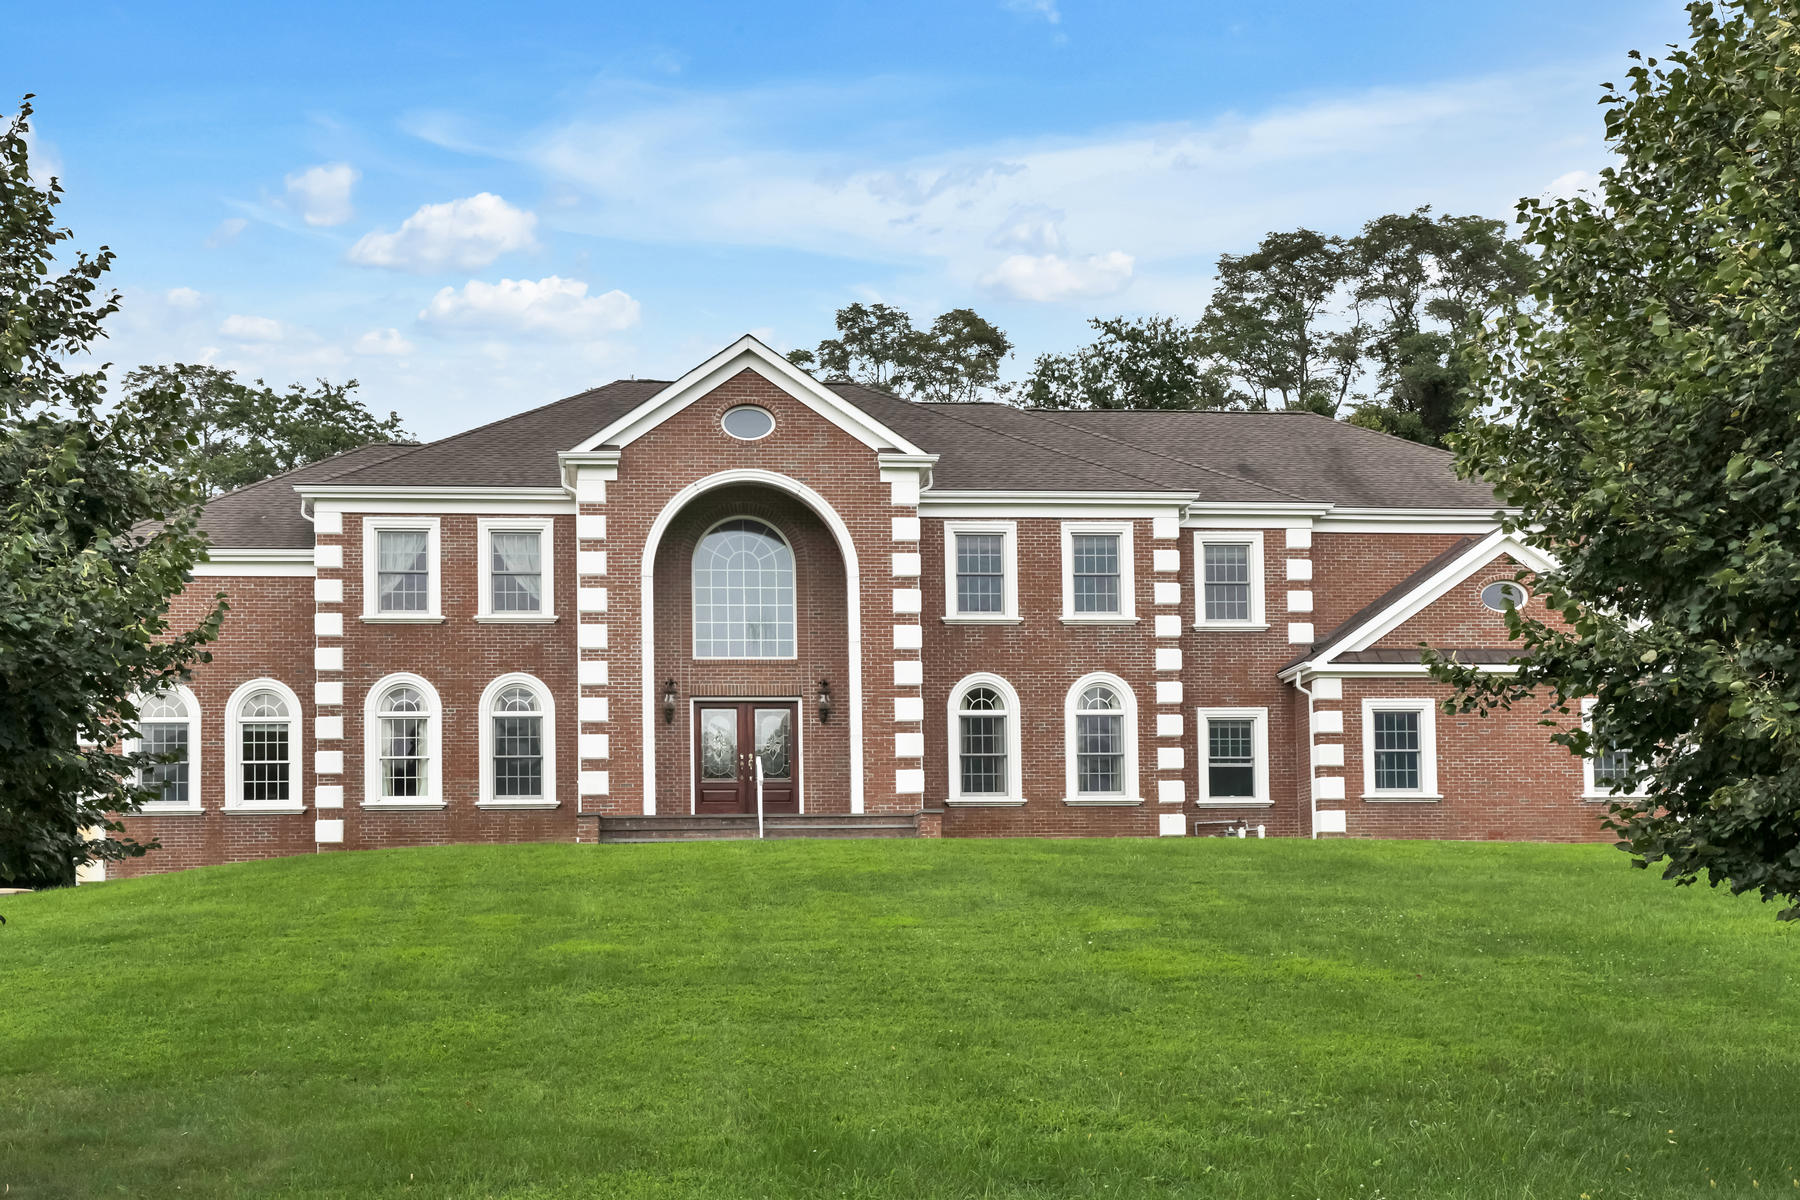 Single Family Homes for Sale at Gracious and Elegant Custom Colonial 1 Pennyroyal Court, Colts Neck, New Jersey 07722 United States